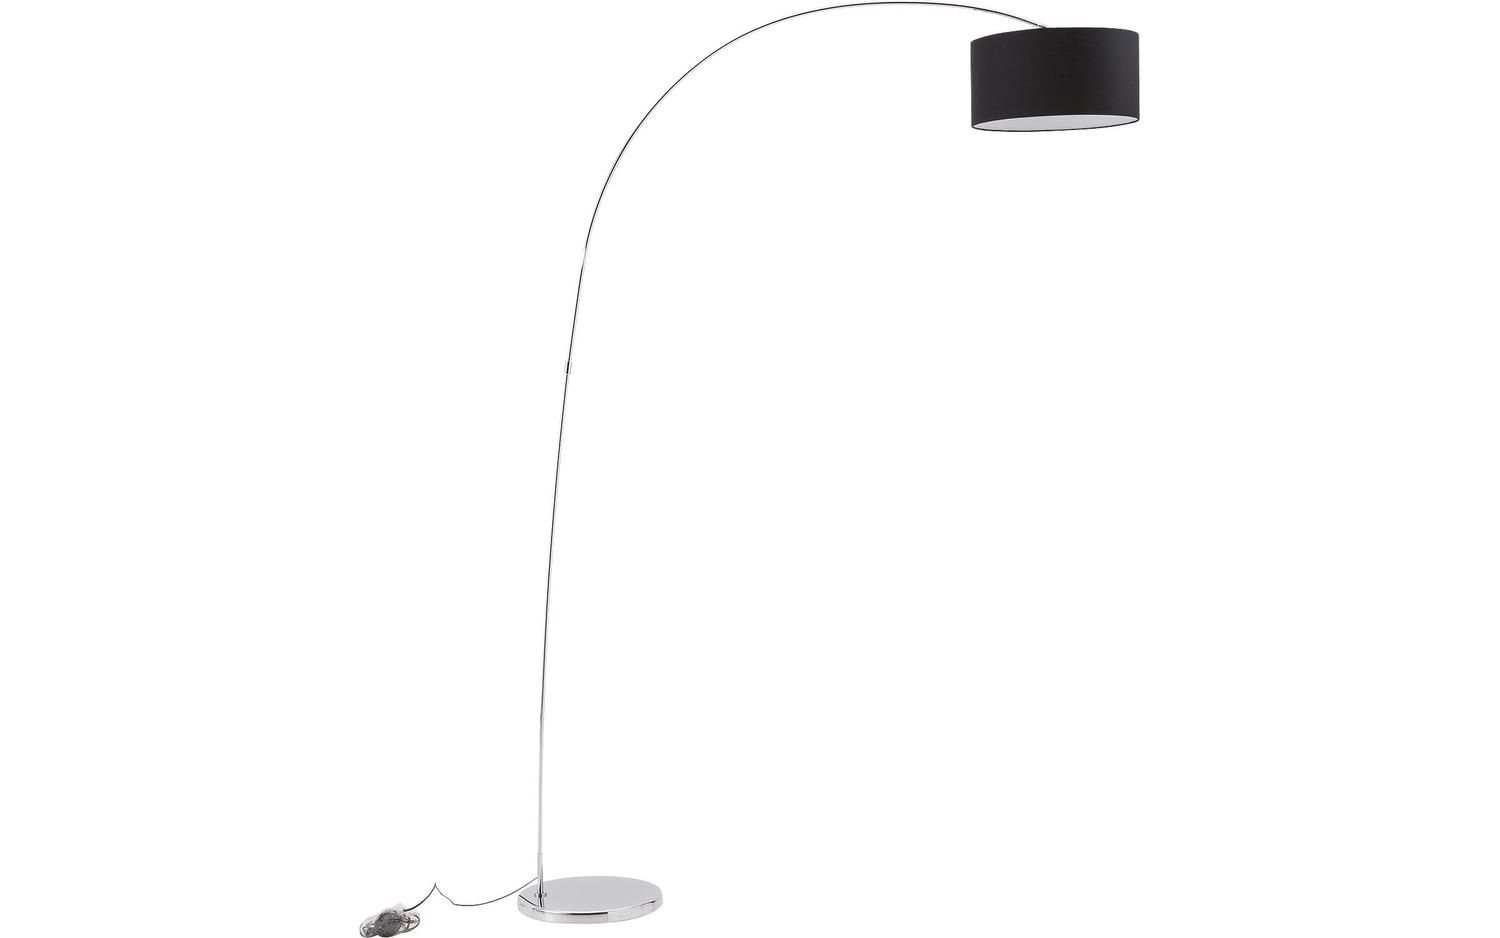 Lamp Leen Bakker Latest Lamp Living Room White Floorlamp Vloerlamp Grando